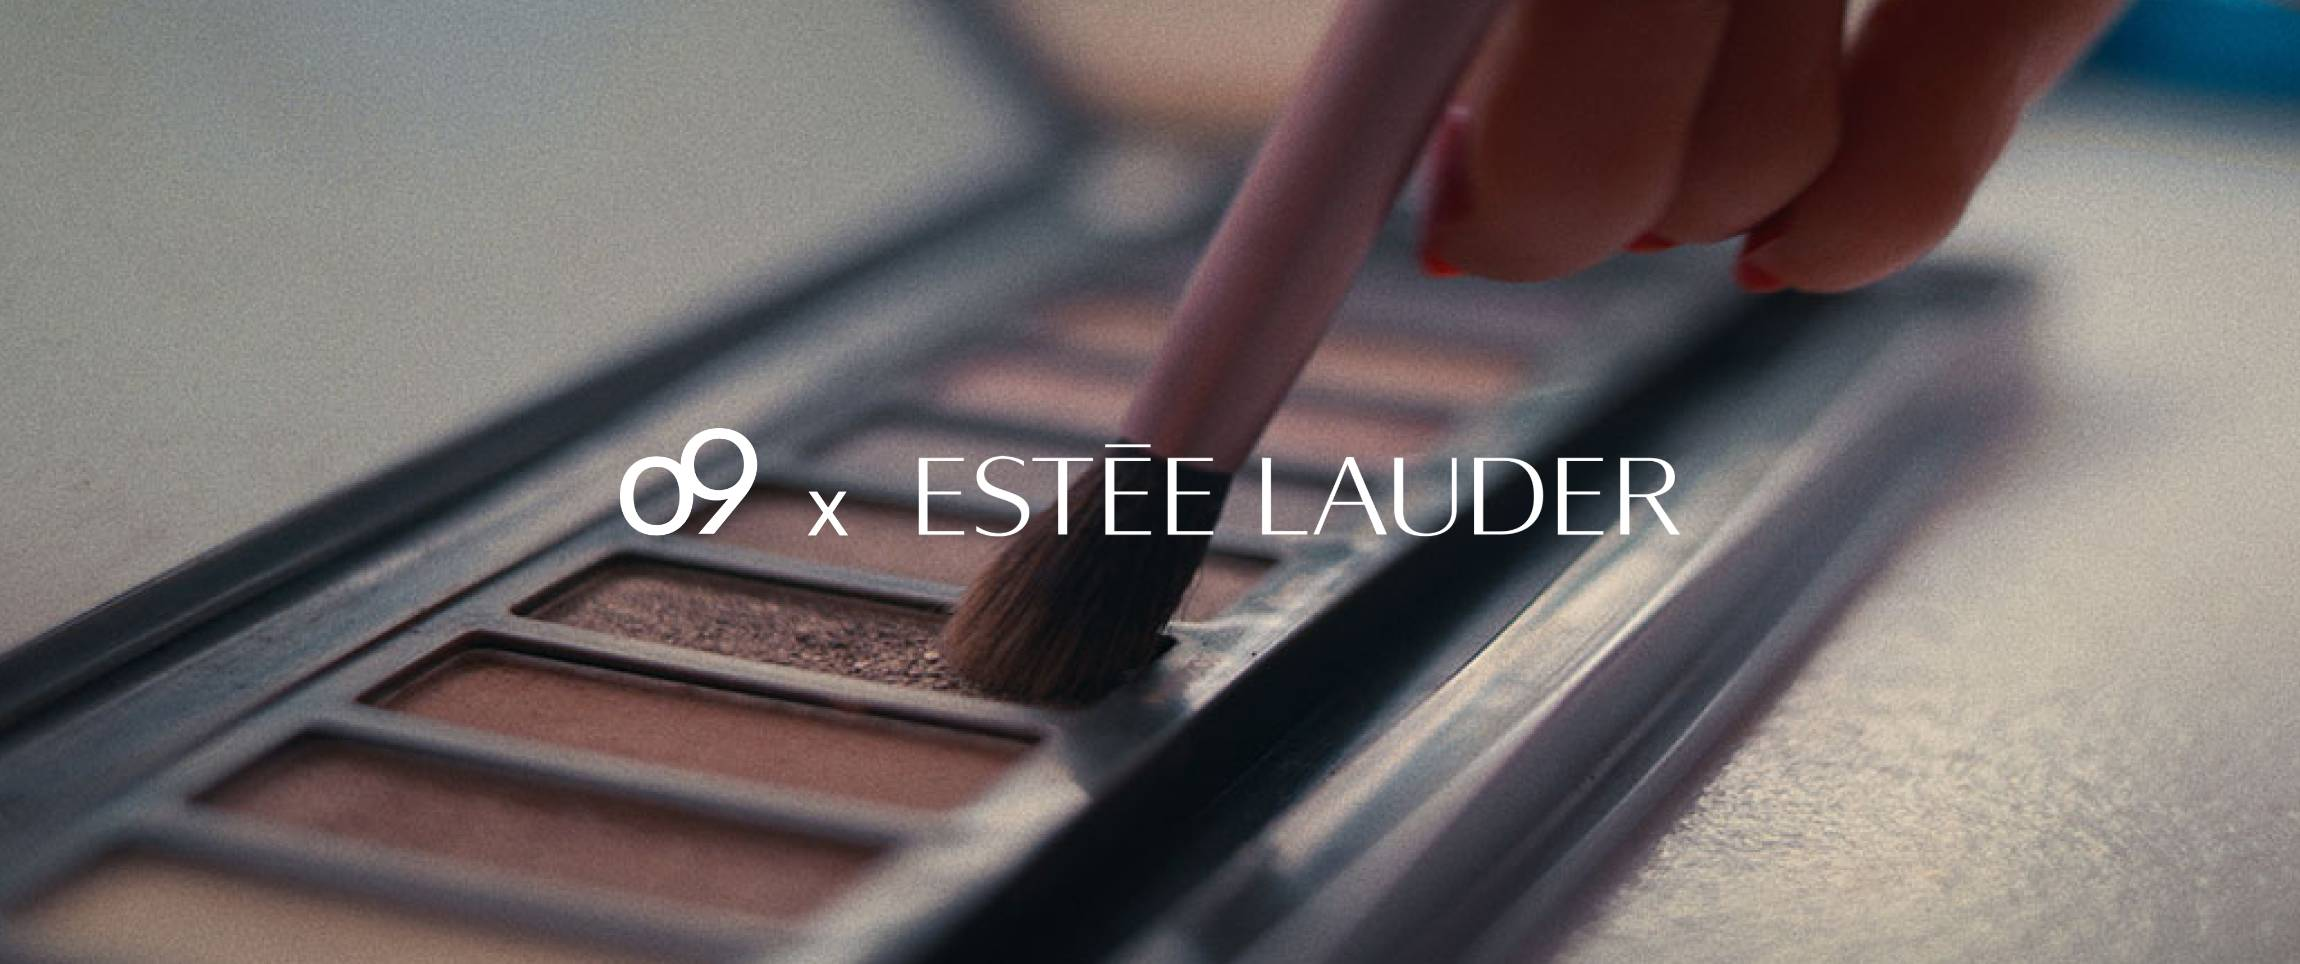 Estée Lauder is digitally transforming planning and decision making with o9